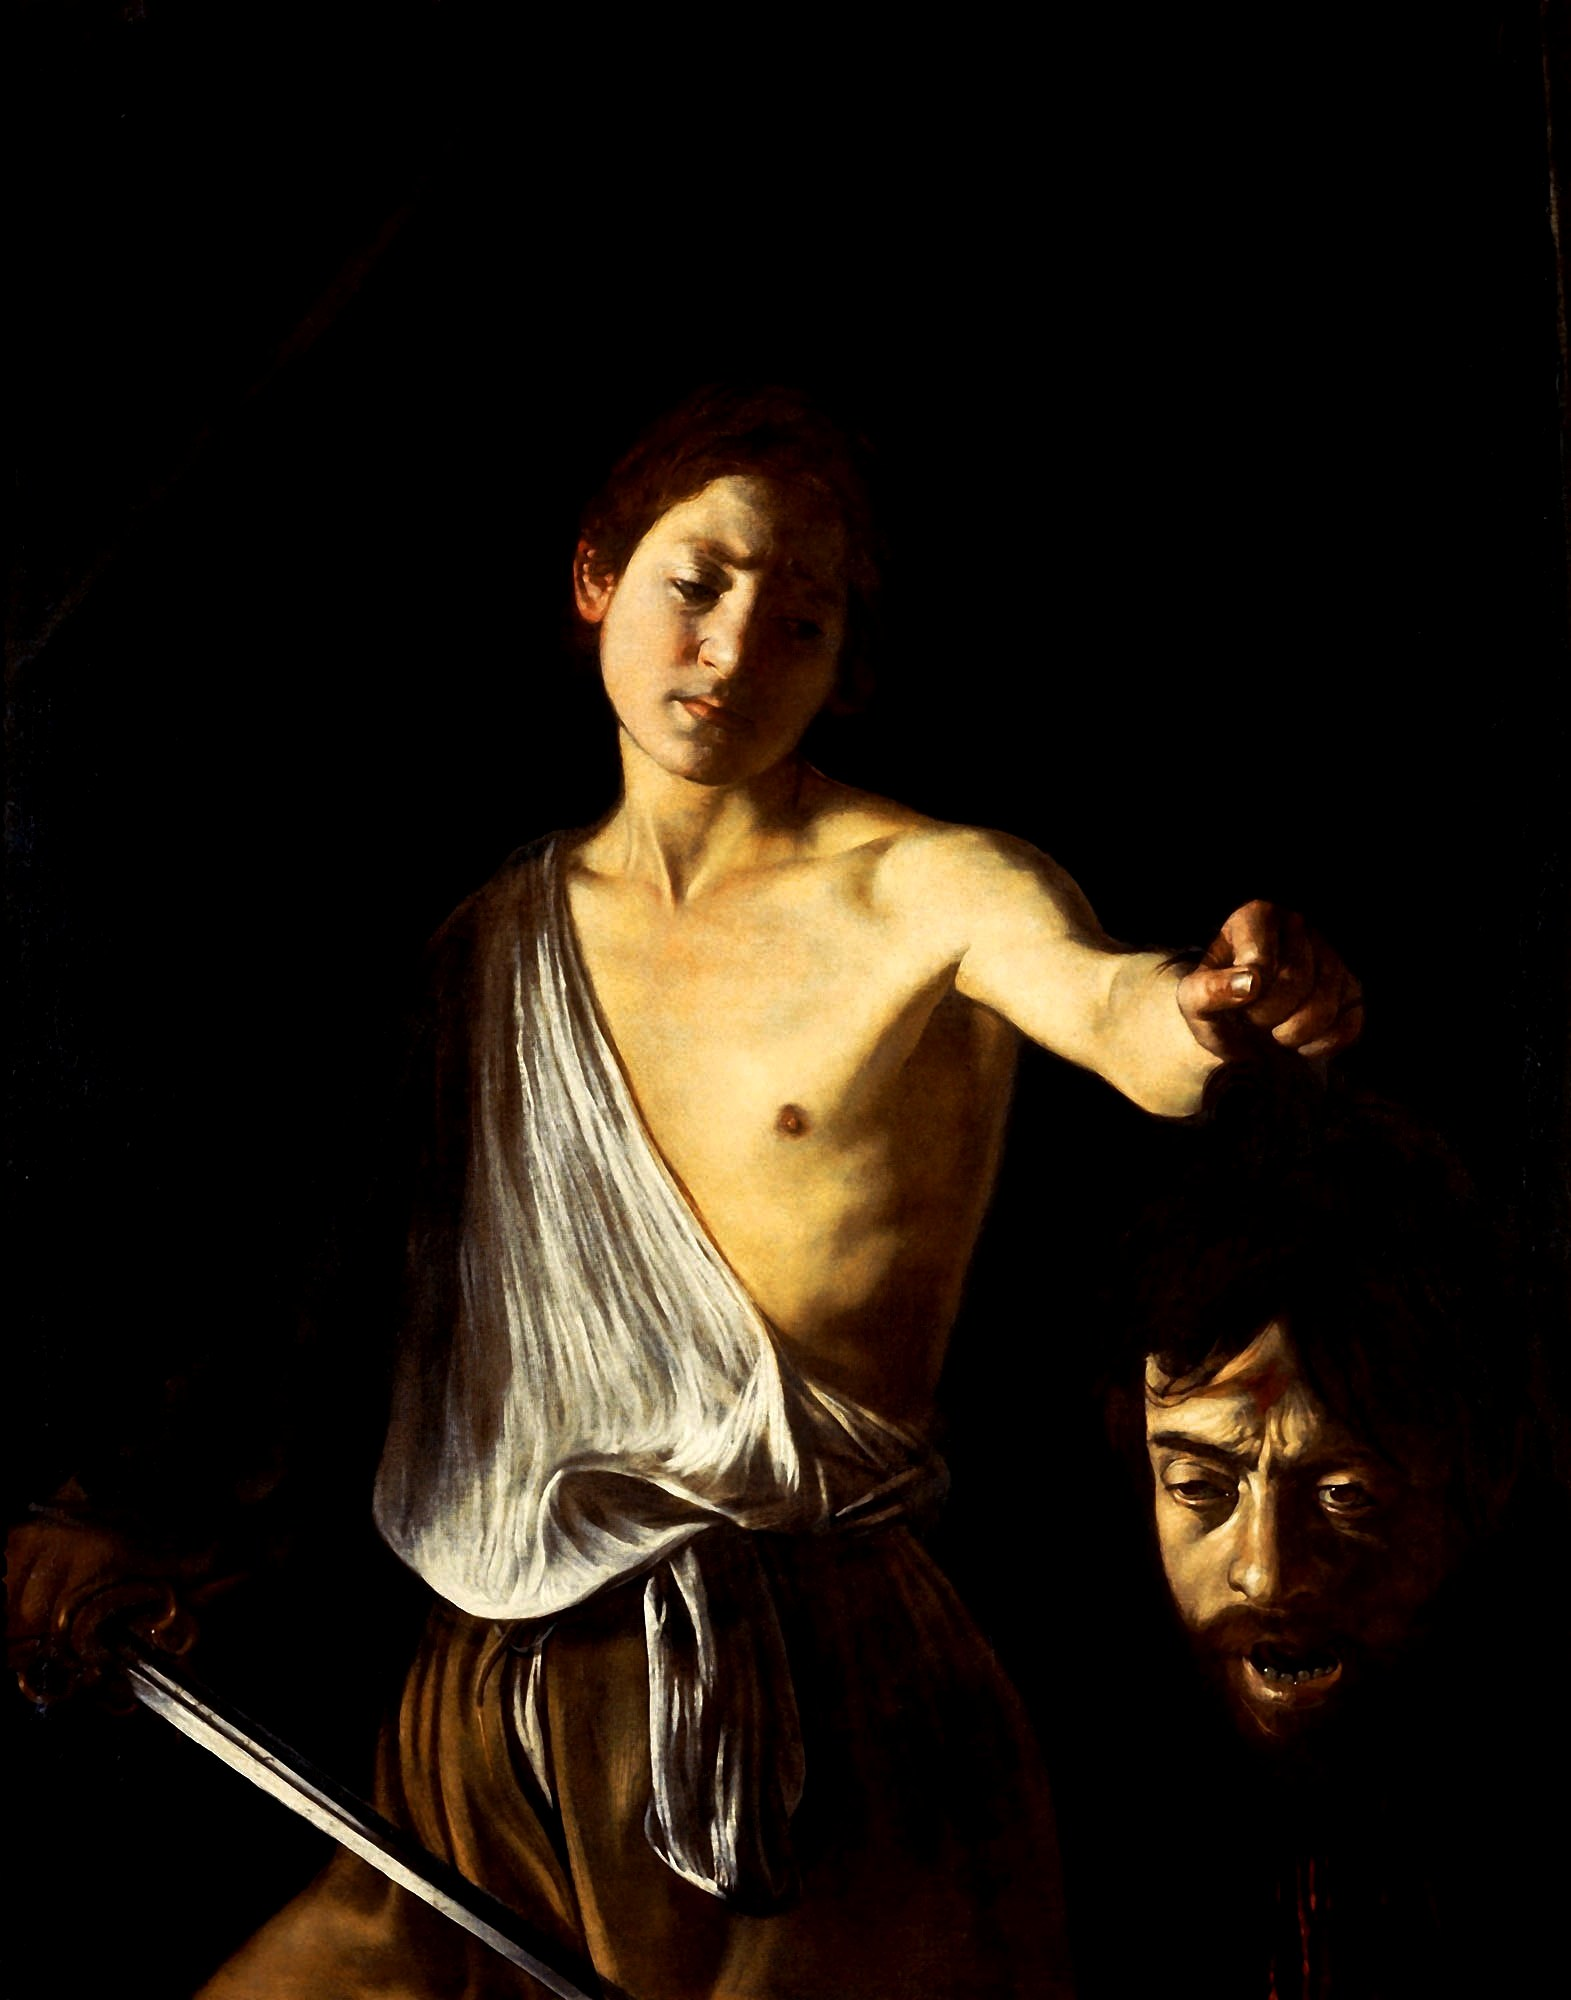 Caravaggio: David with Head of Goliath